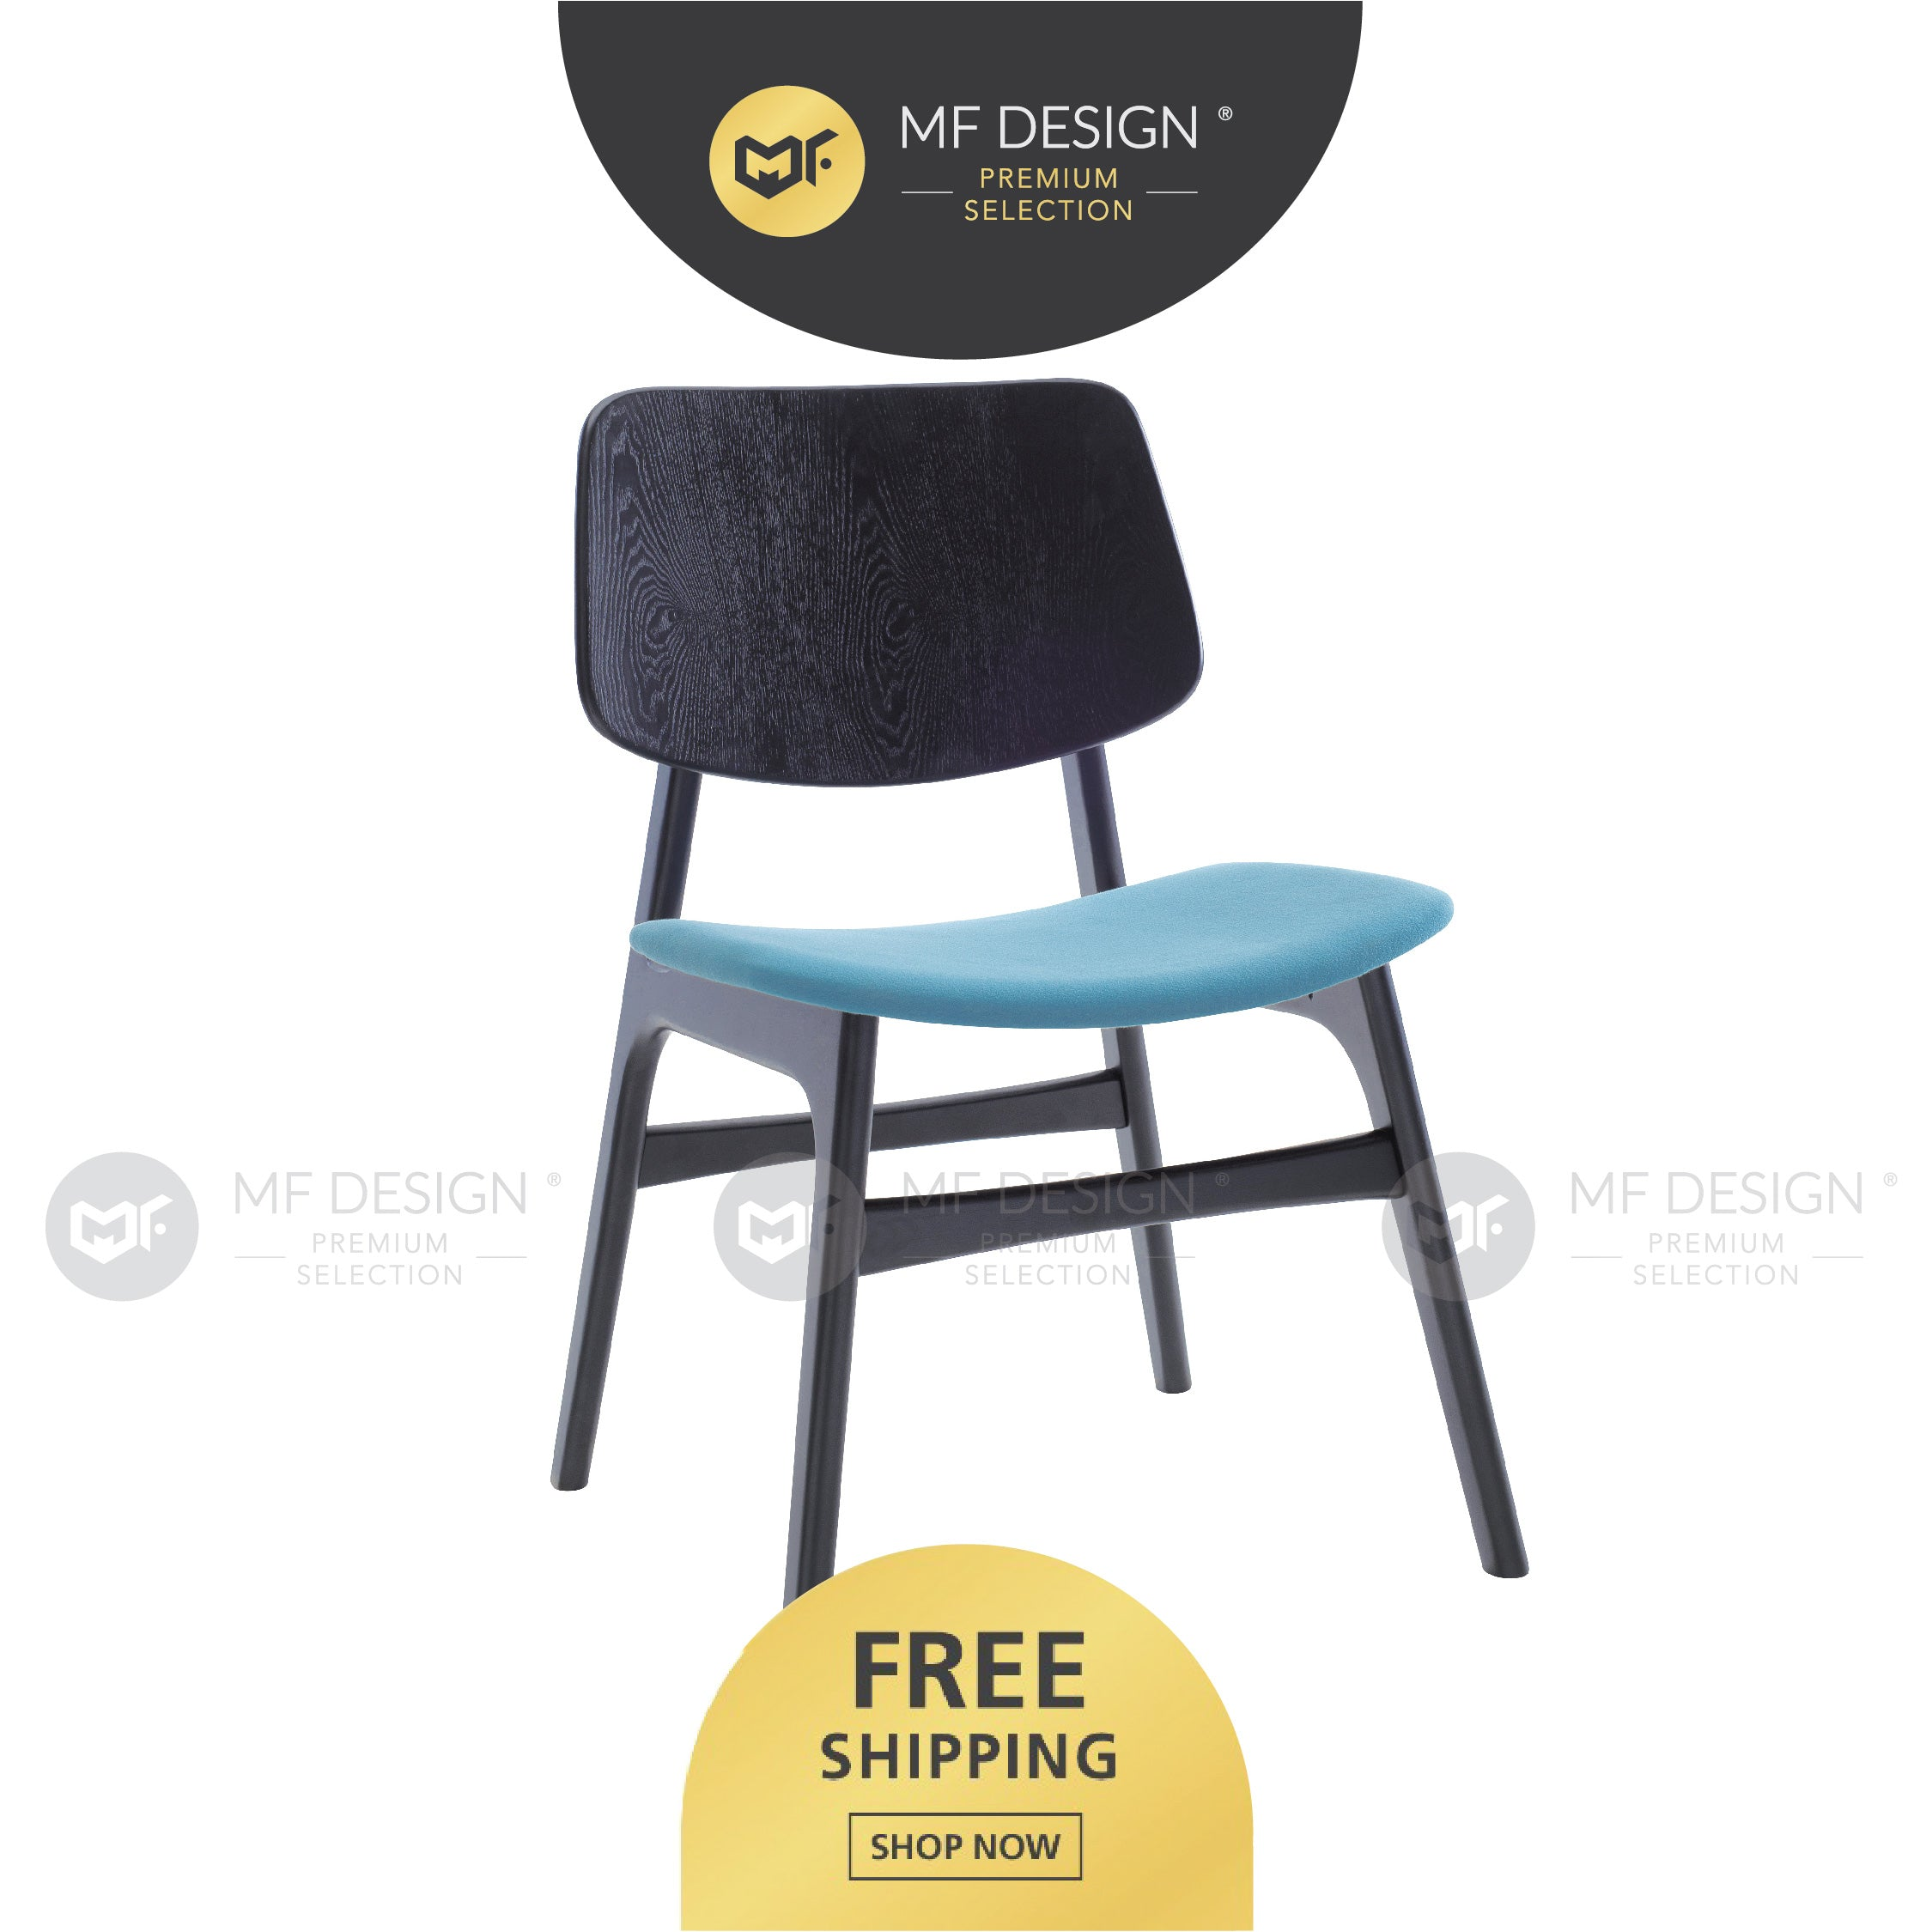 MFD Premium Magnes Dining Chair / kerusi / chair